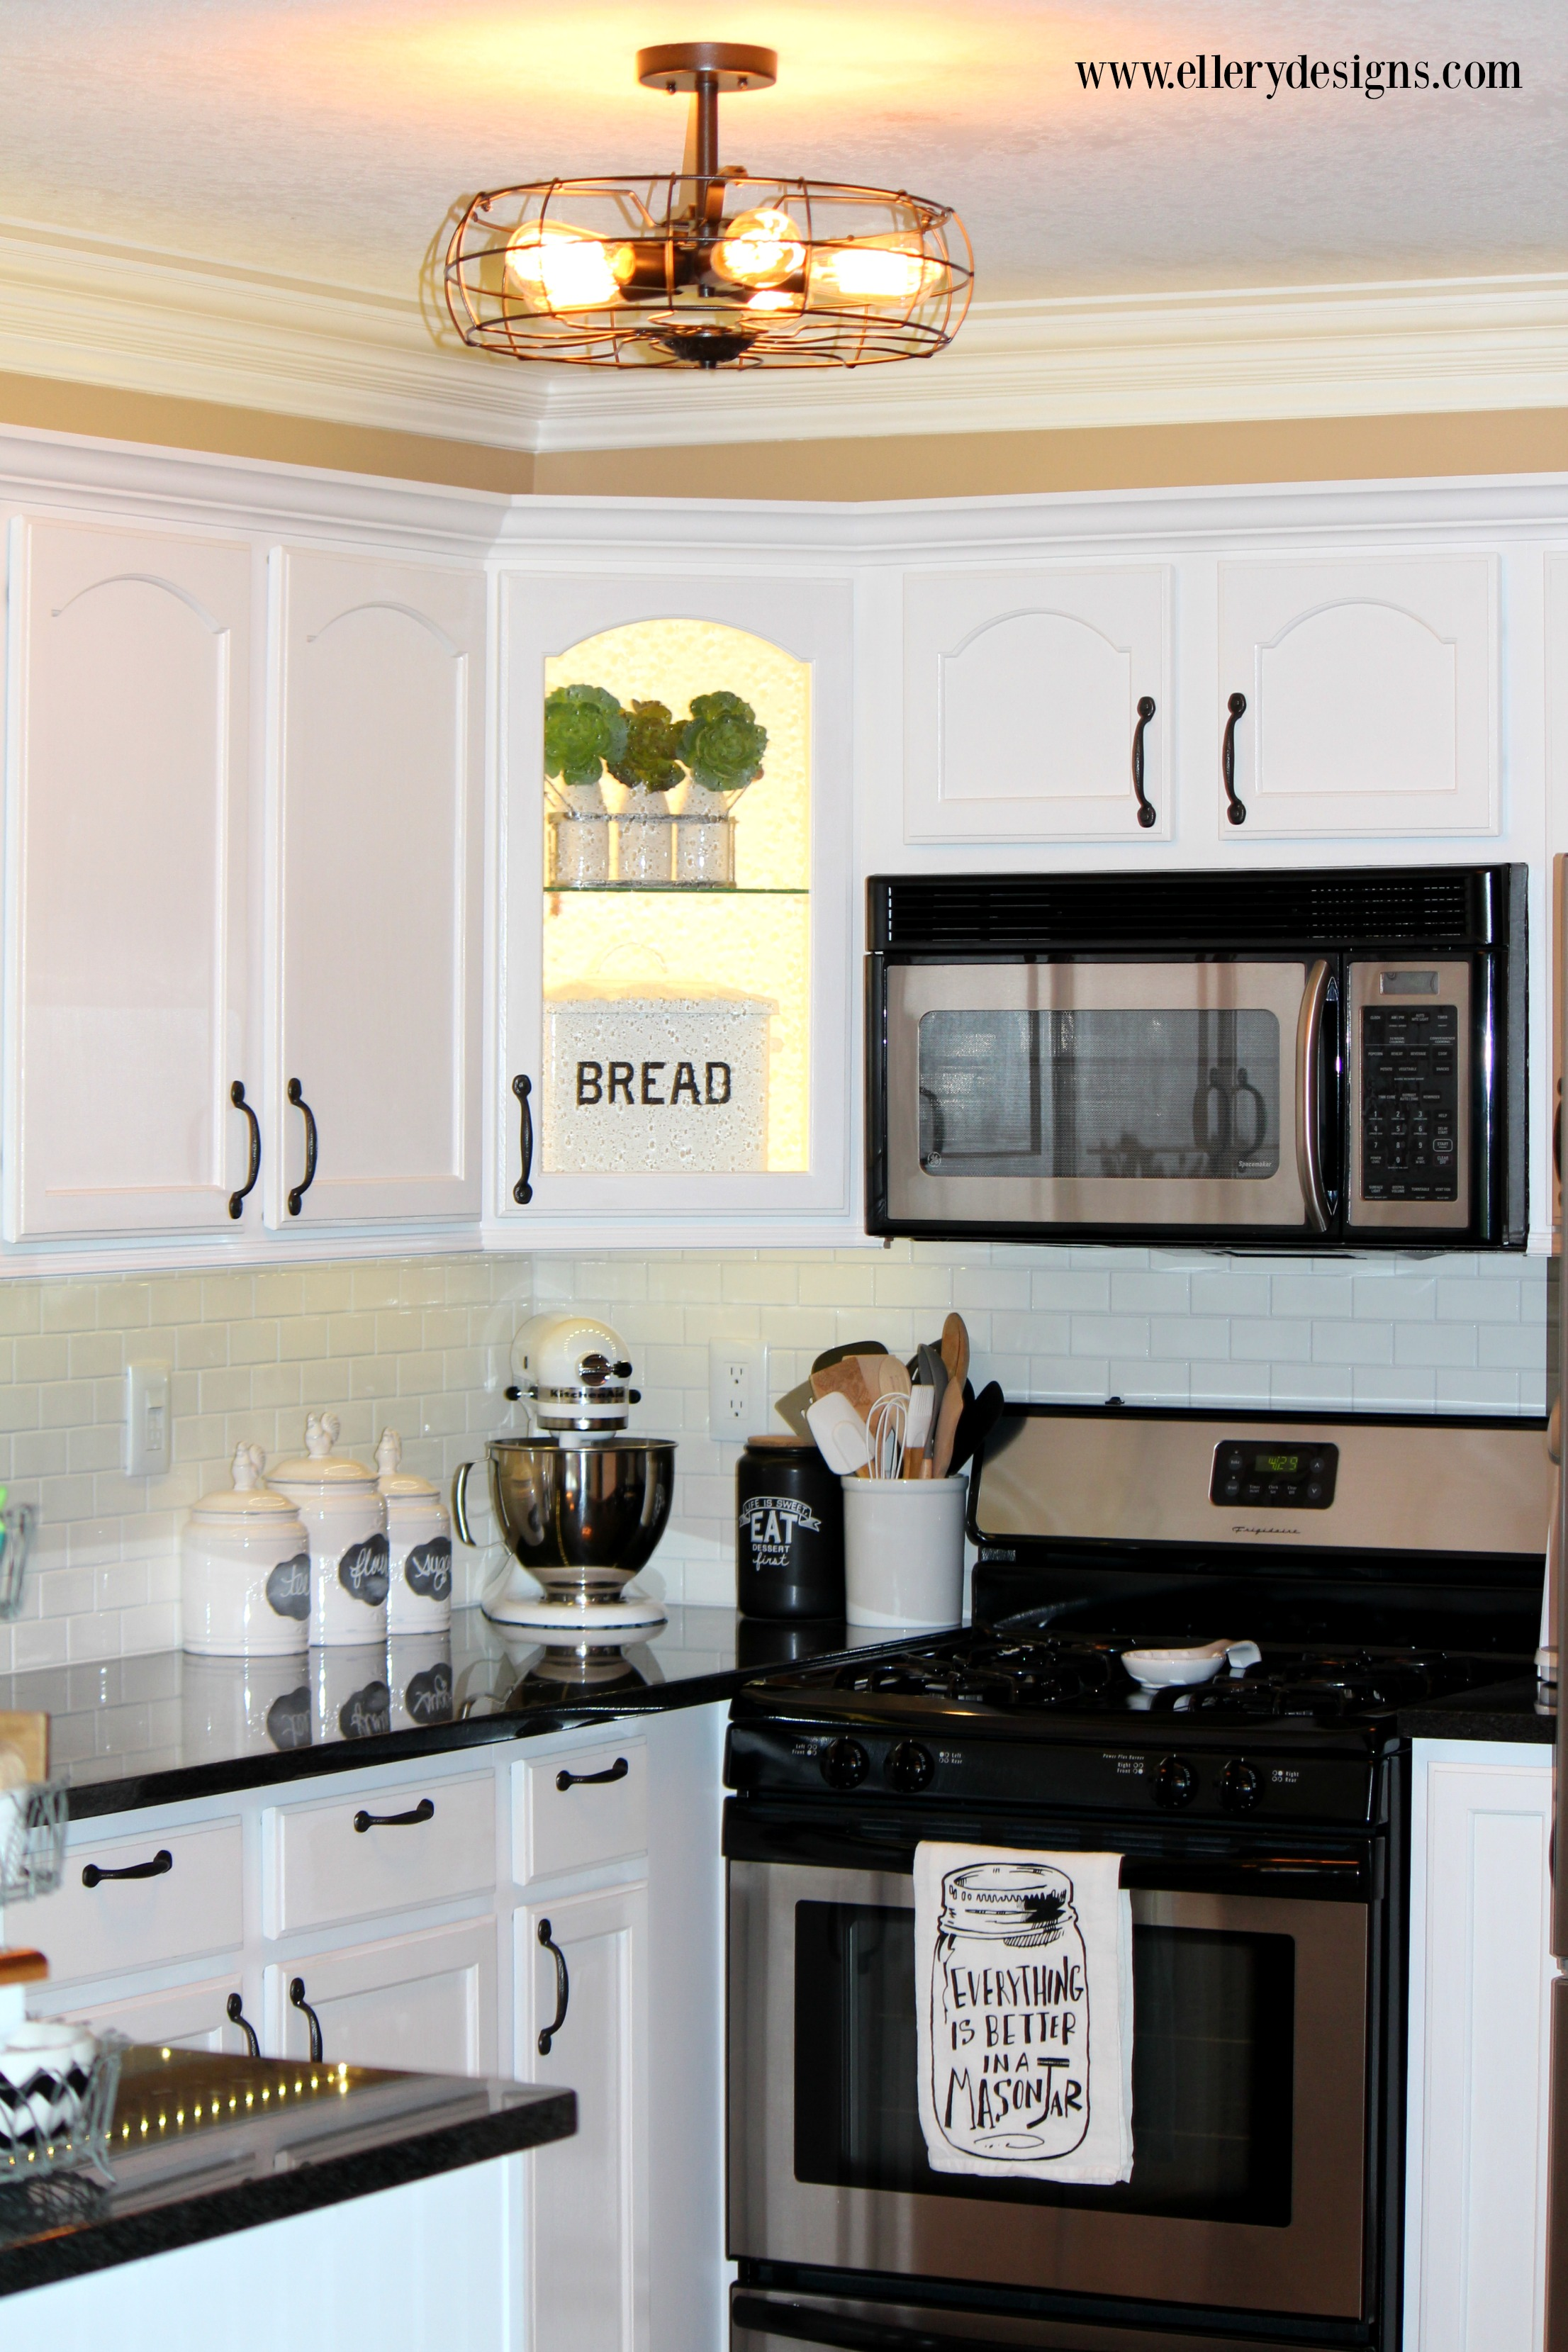 Fabulous White Kitchen Makeover - ElleryDesigns.com